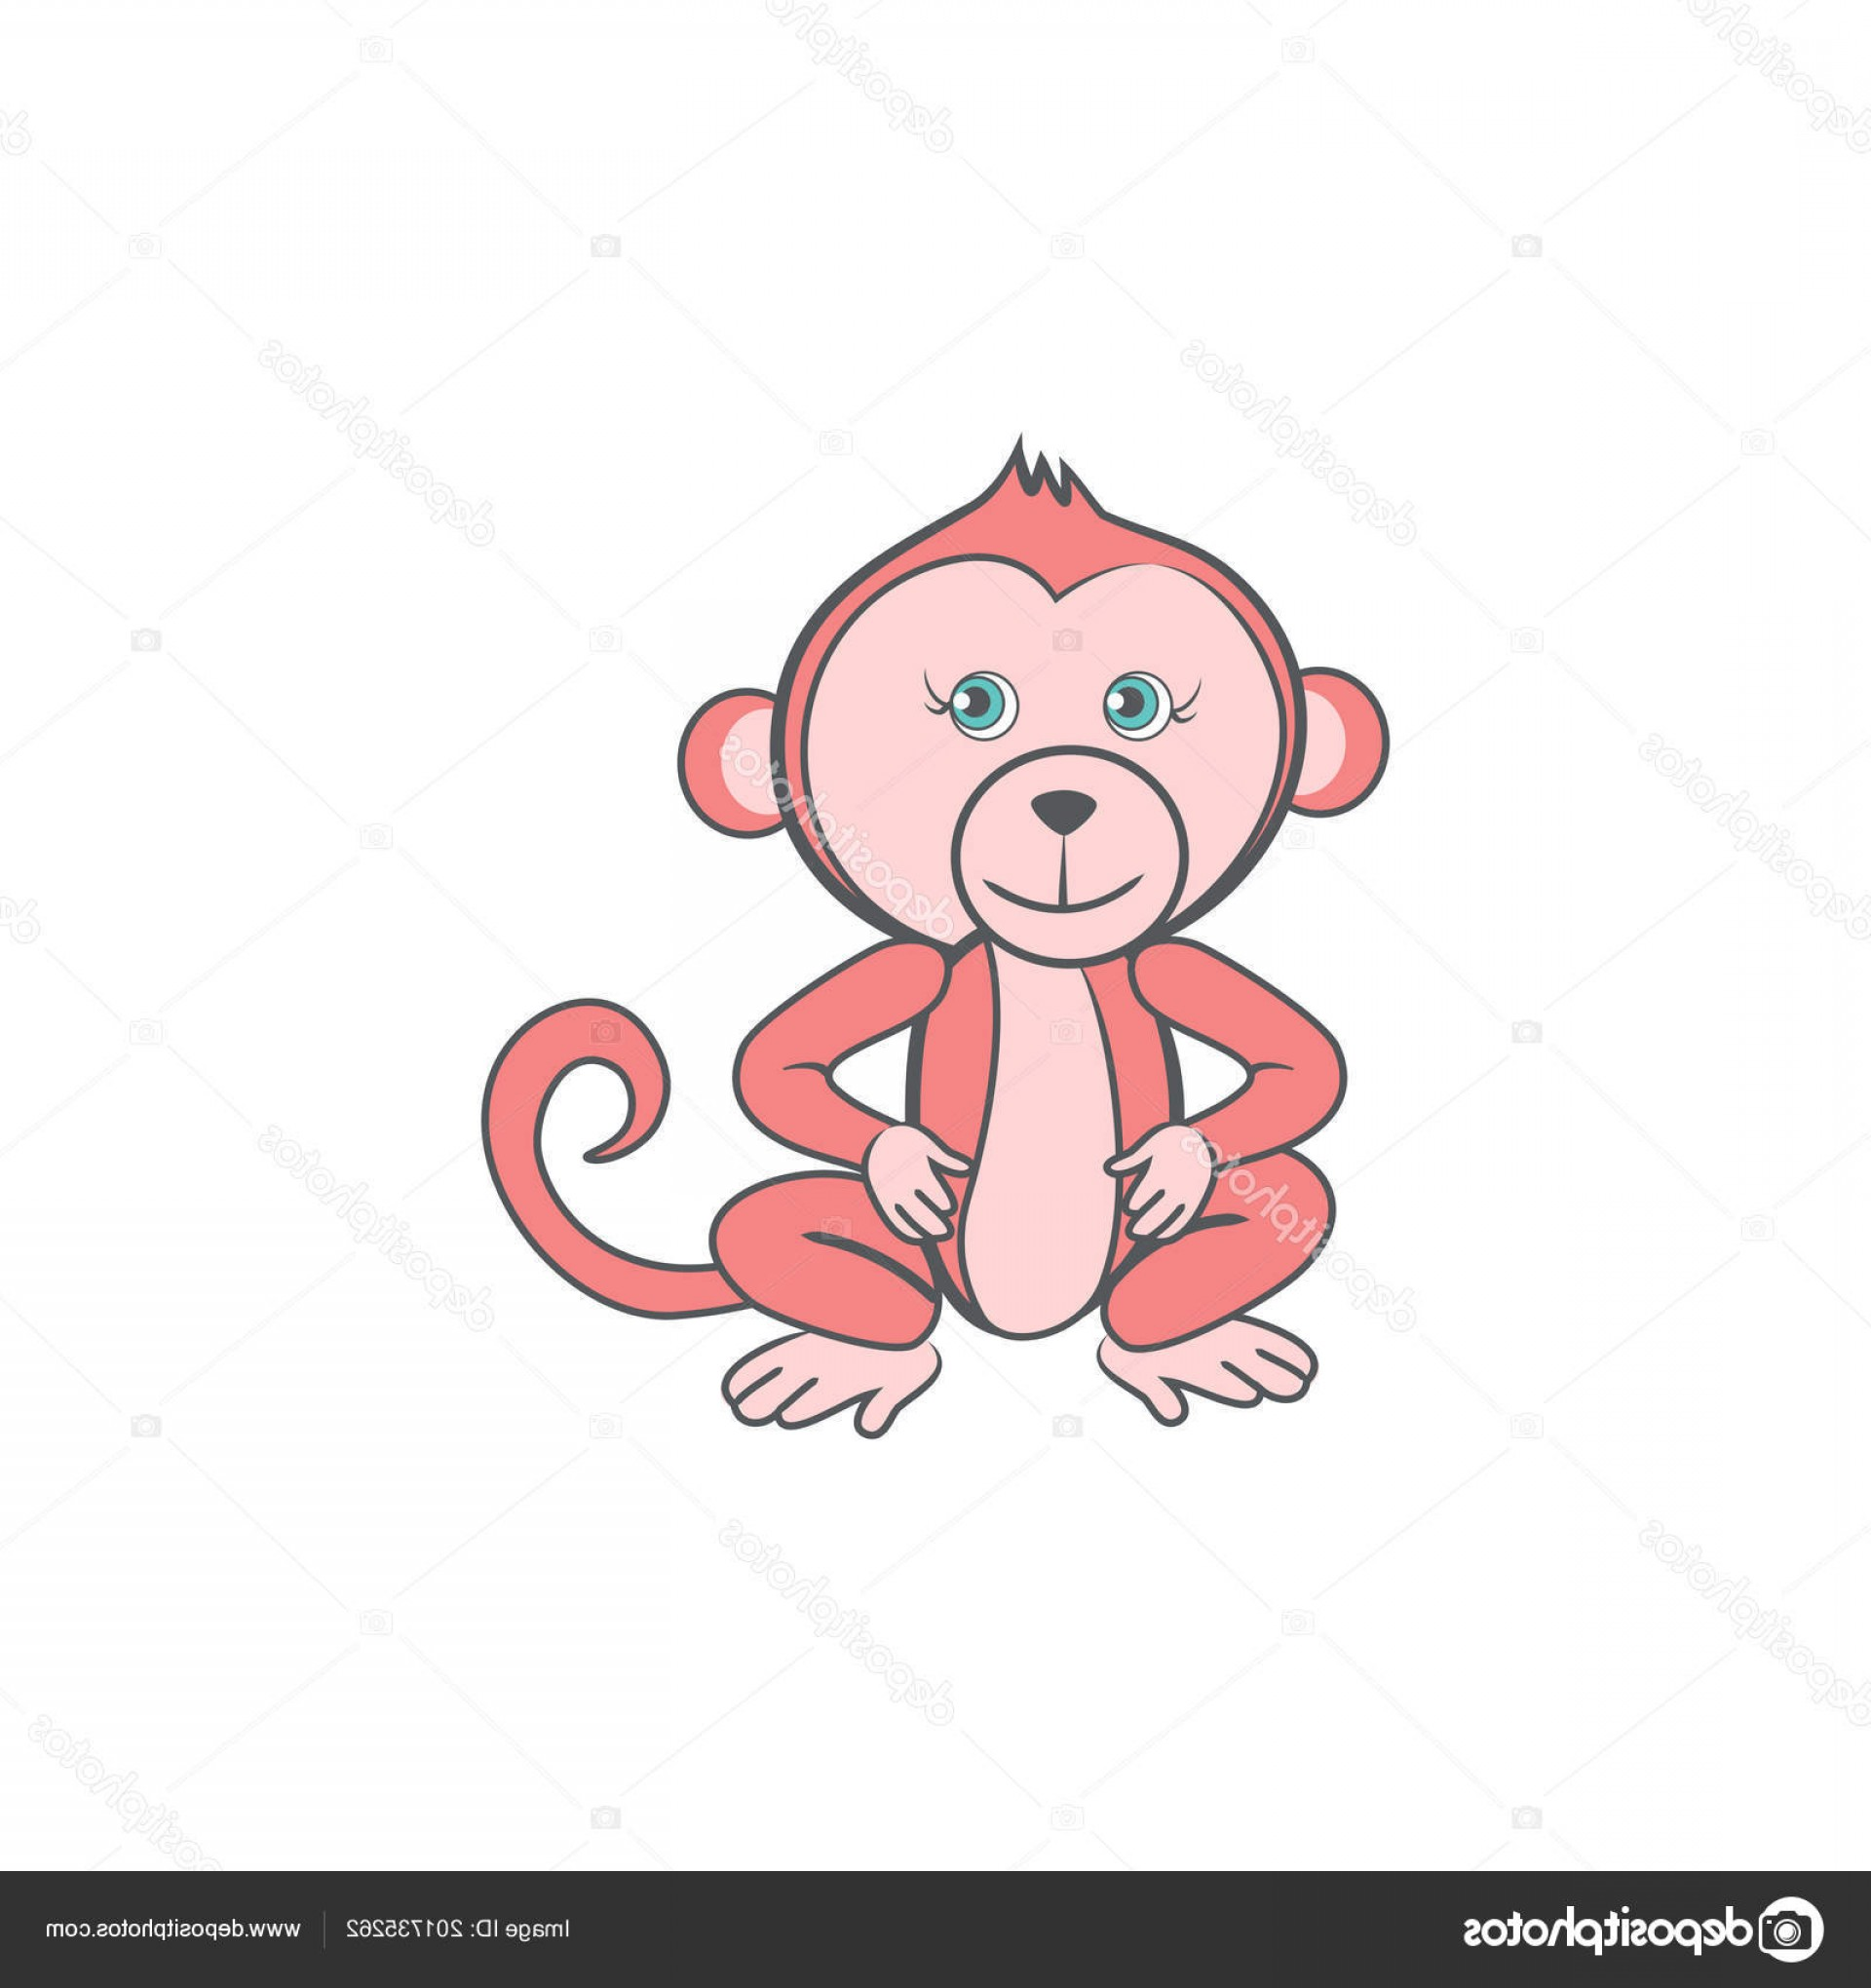 Sitting Monkey Vector Baby Shower: Stock Illustration Cute Cartoon Pink Monkey Wild